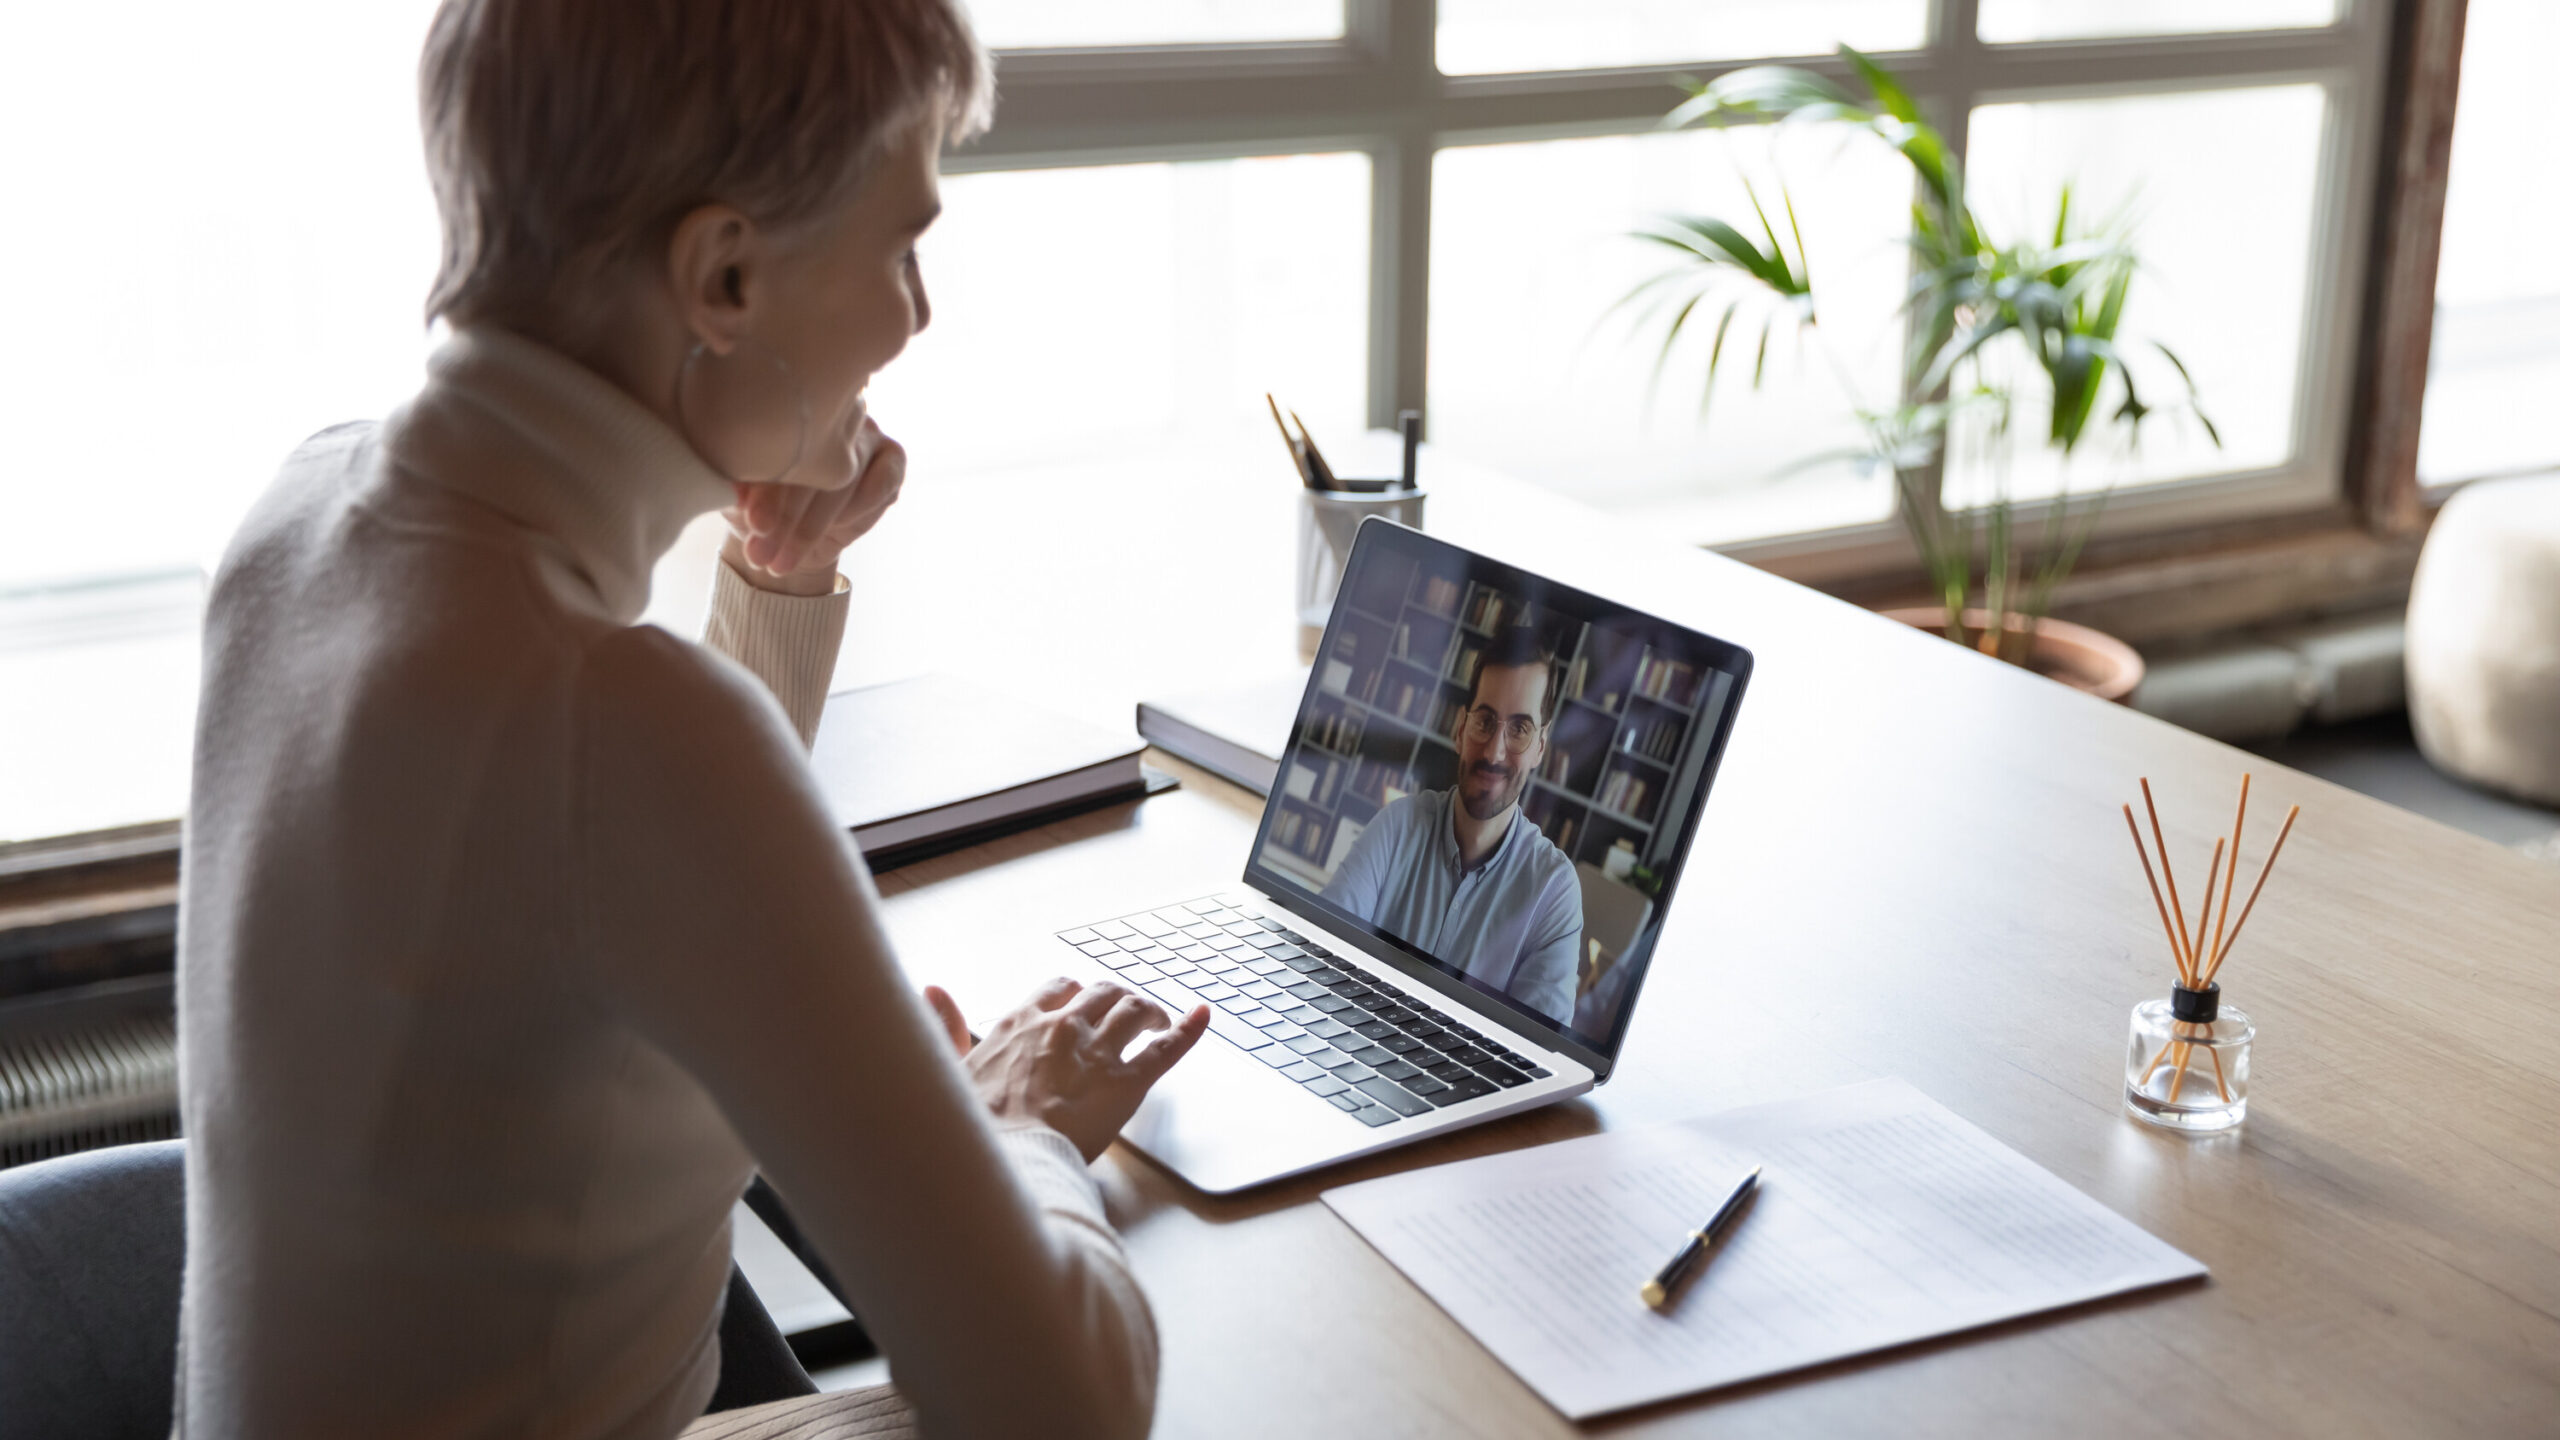 These tips and tricks are sure to help ypu ace the remote interview!